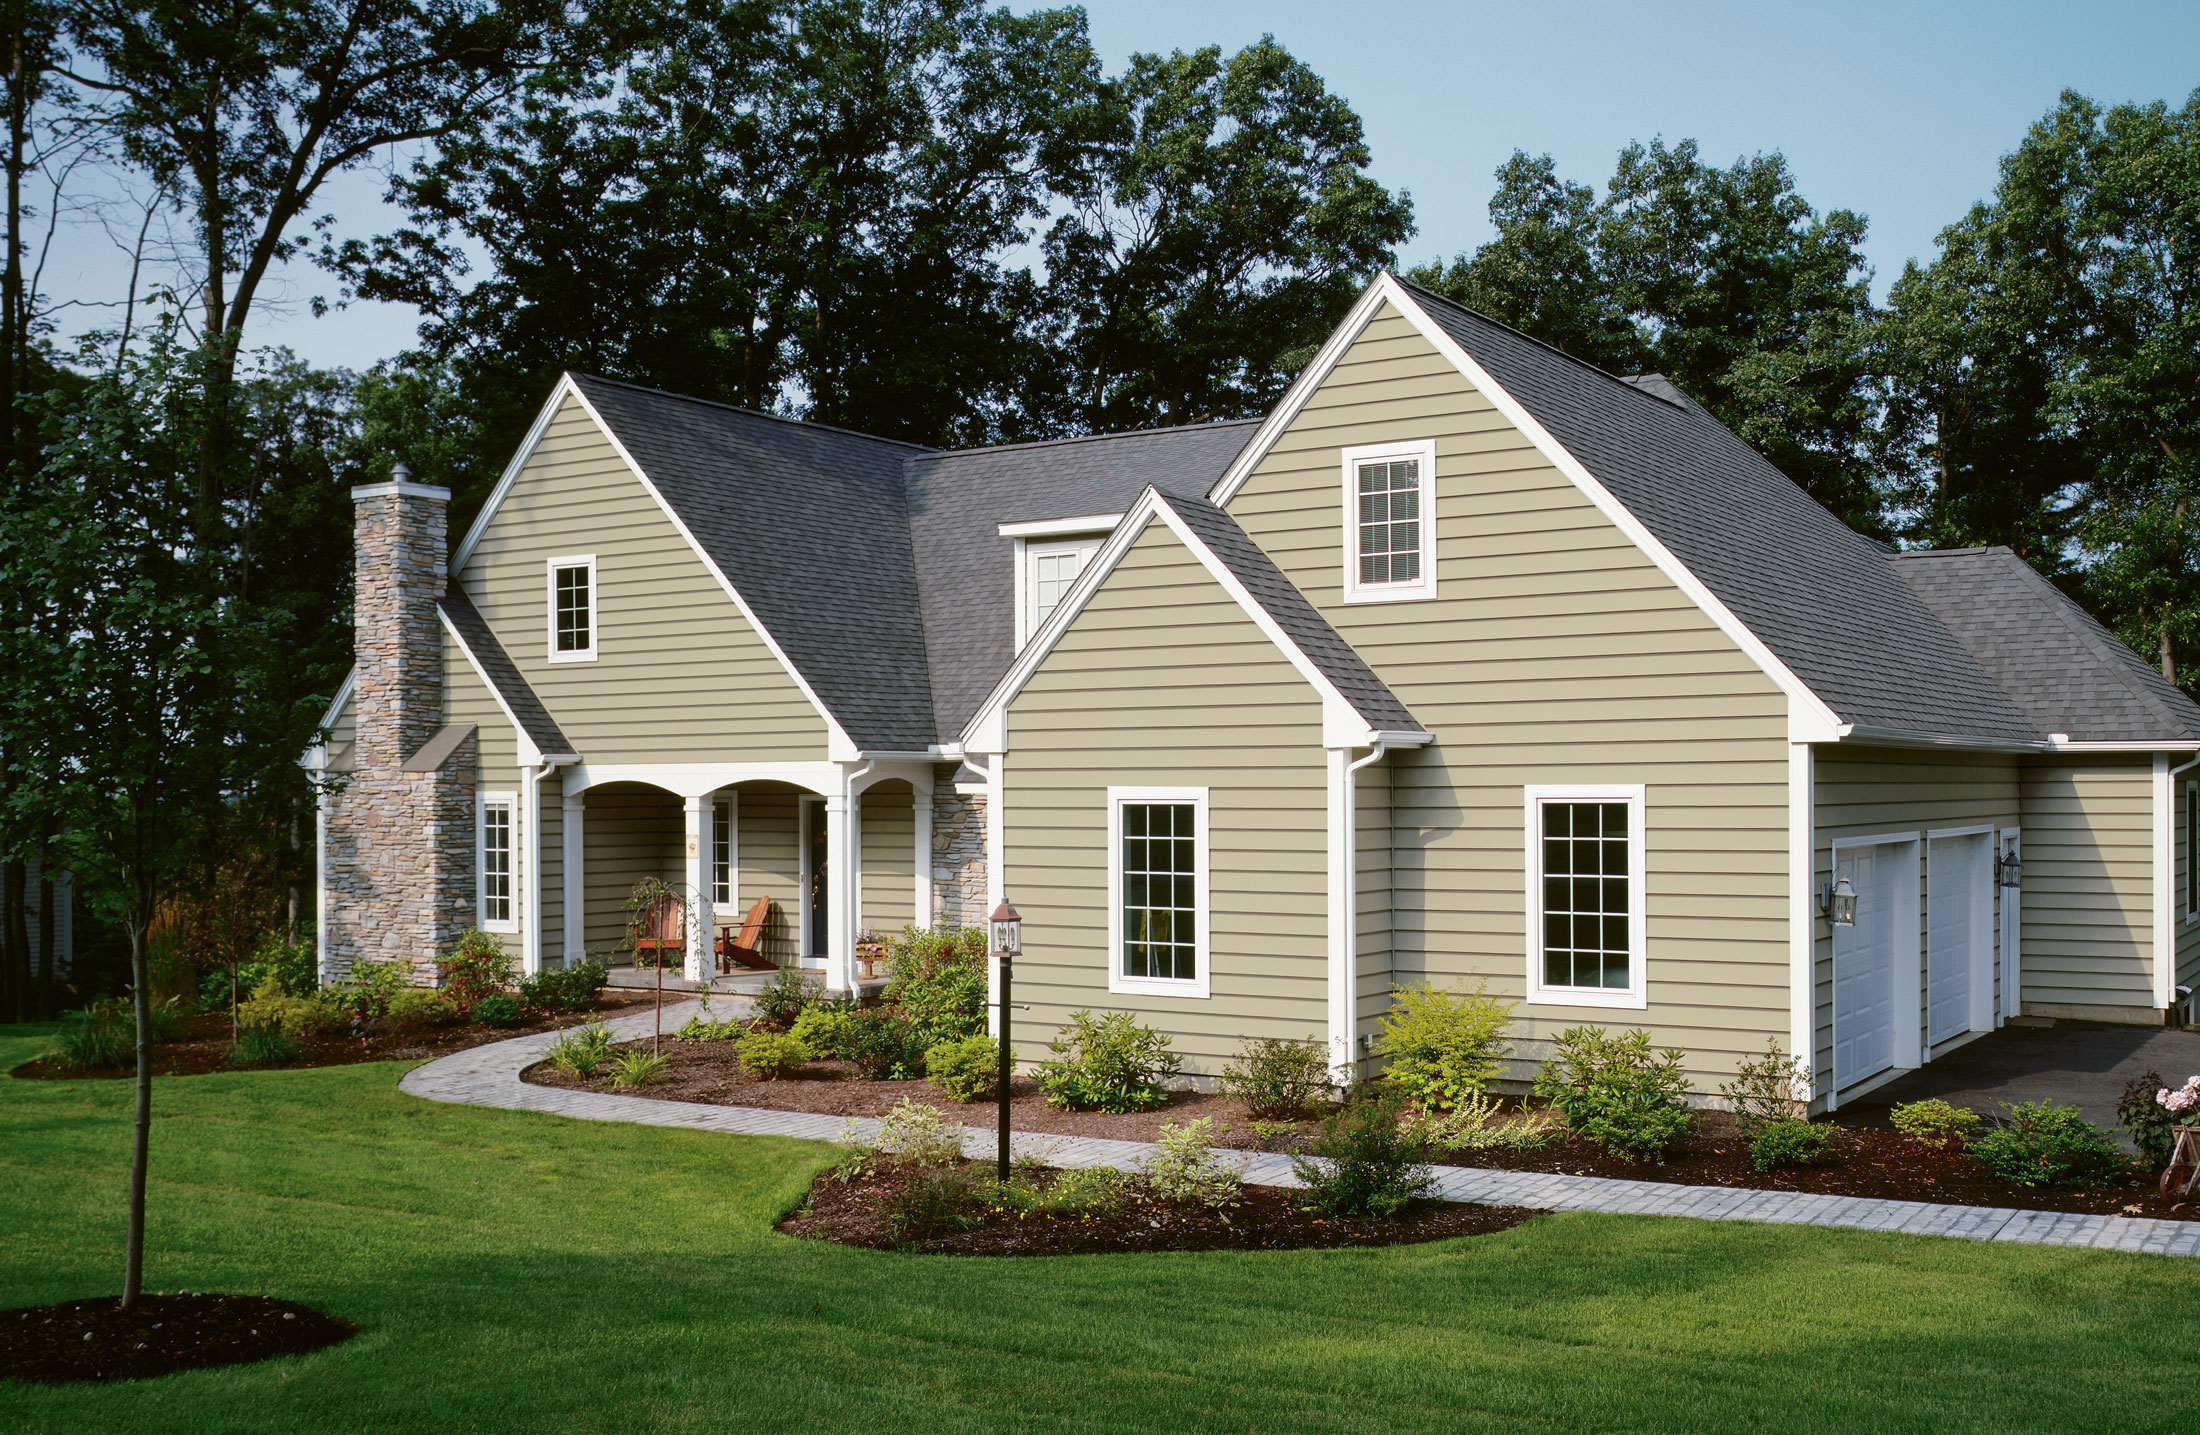 Hodges Roofing Does Vinyl Siding In Winston Salem Nc Winston Salem Roofers 336 391 2799